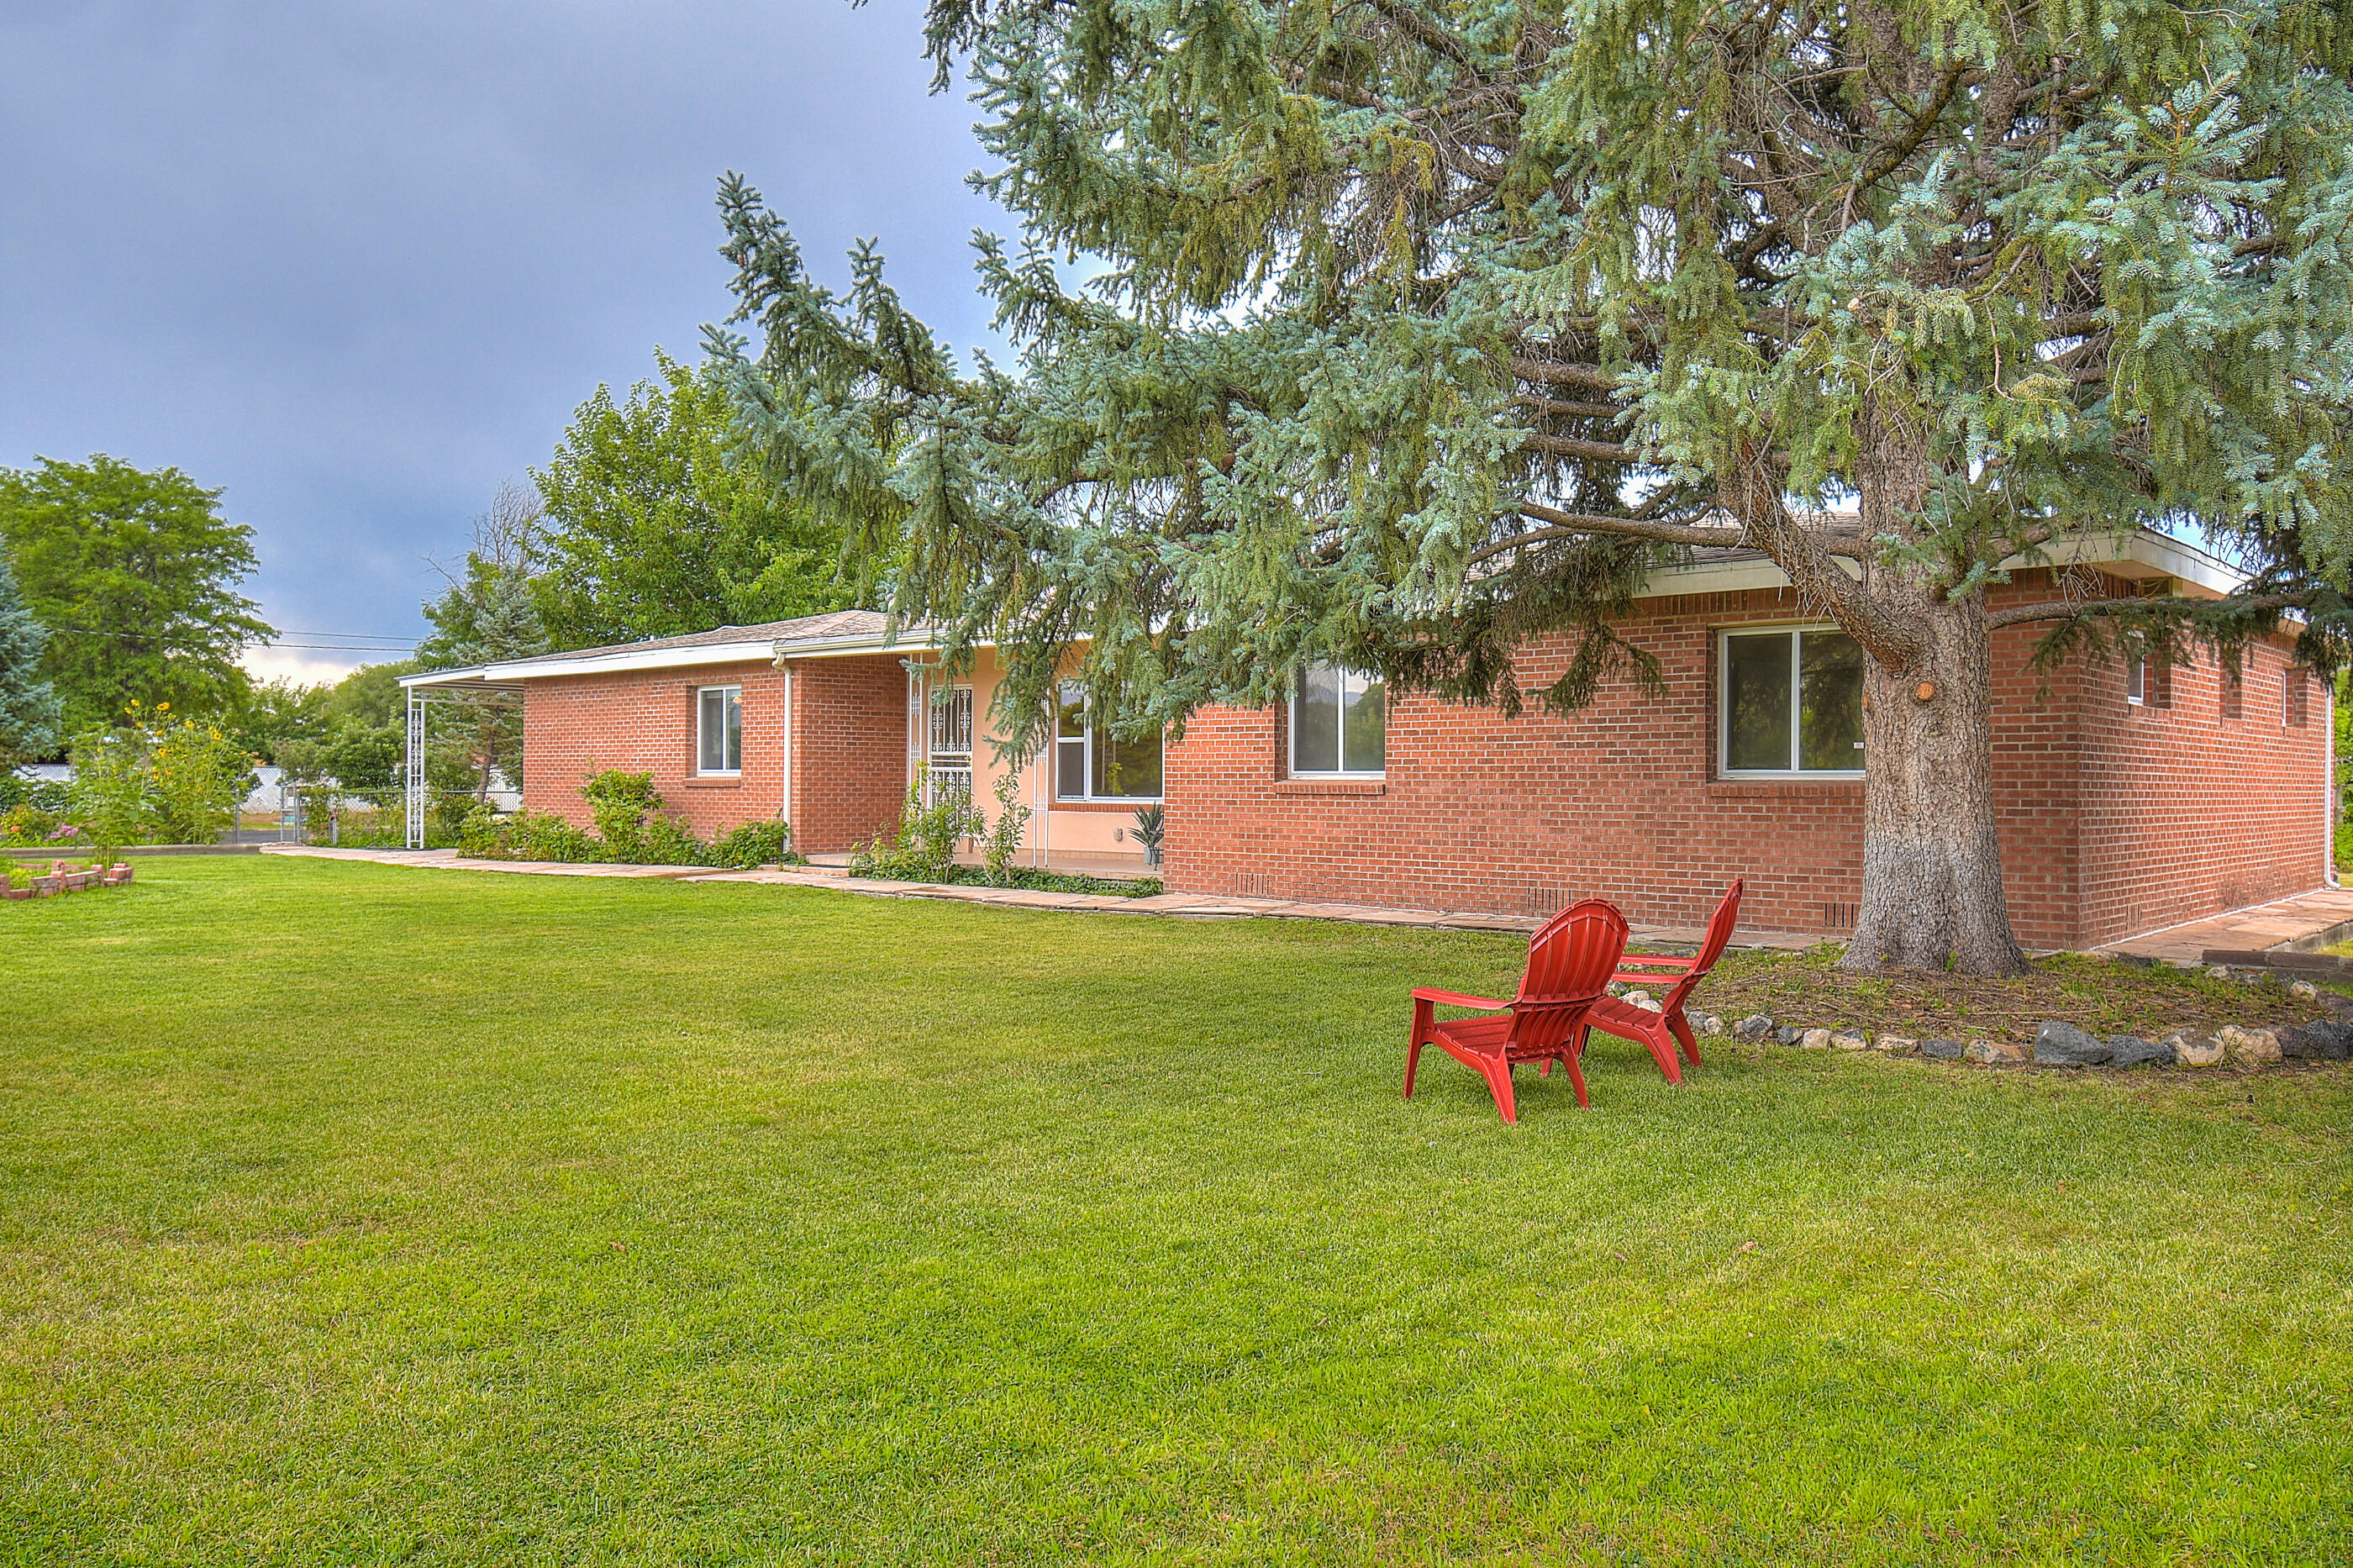 Private, Fully Enclosed and Gated Accessible Country Living.  Gardeners Dream. 1.45 Acres with Mature Apple Trees.  3 Bedrooms, 4 Baths, 3 Car Garage.  Fully Upgraded Bright and Airy Eat-in Kitchen.  RV Parking.  MRGCD Irrigation.